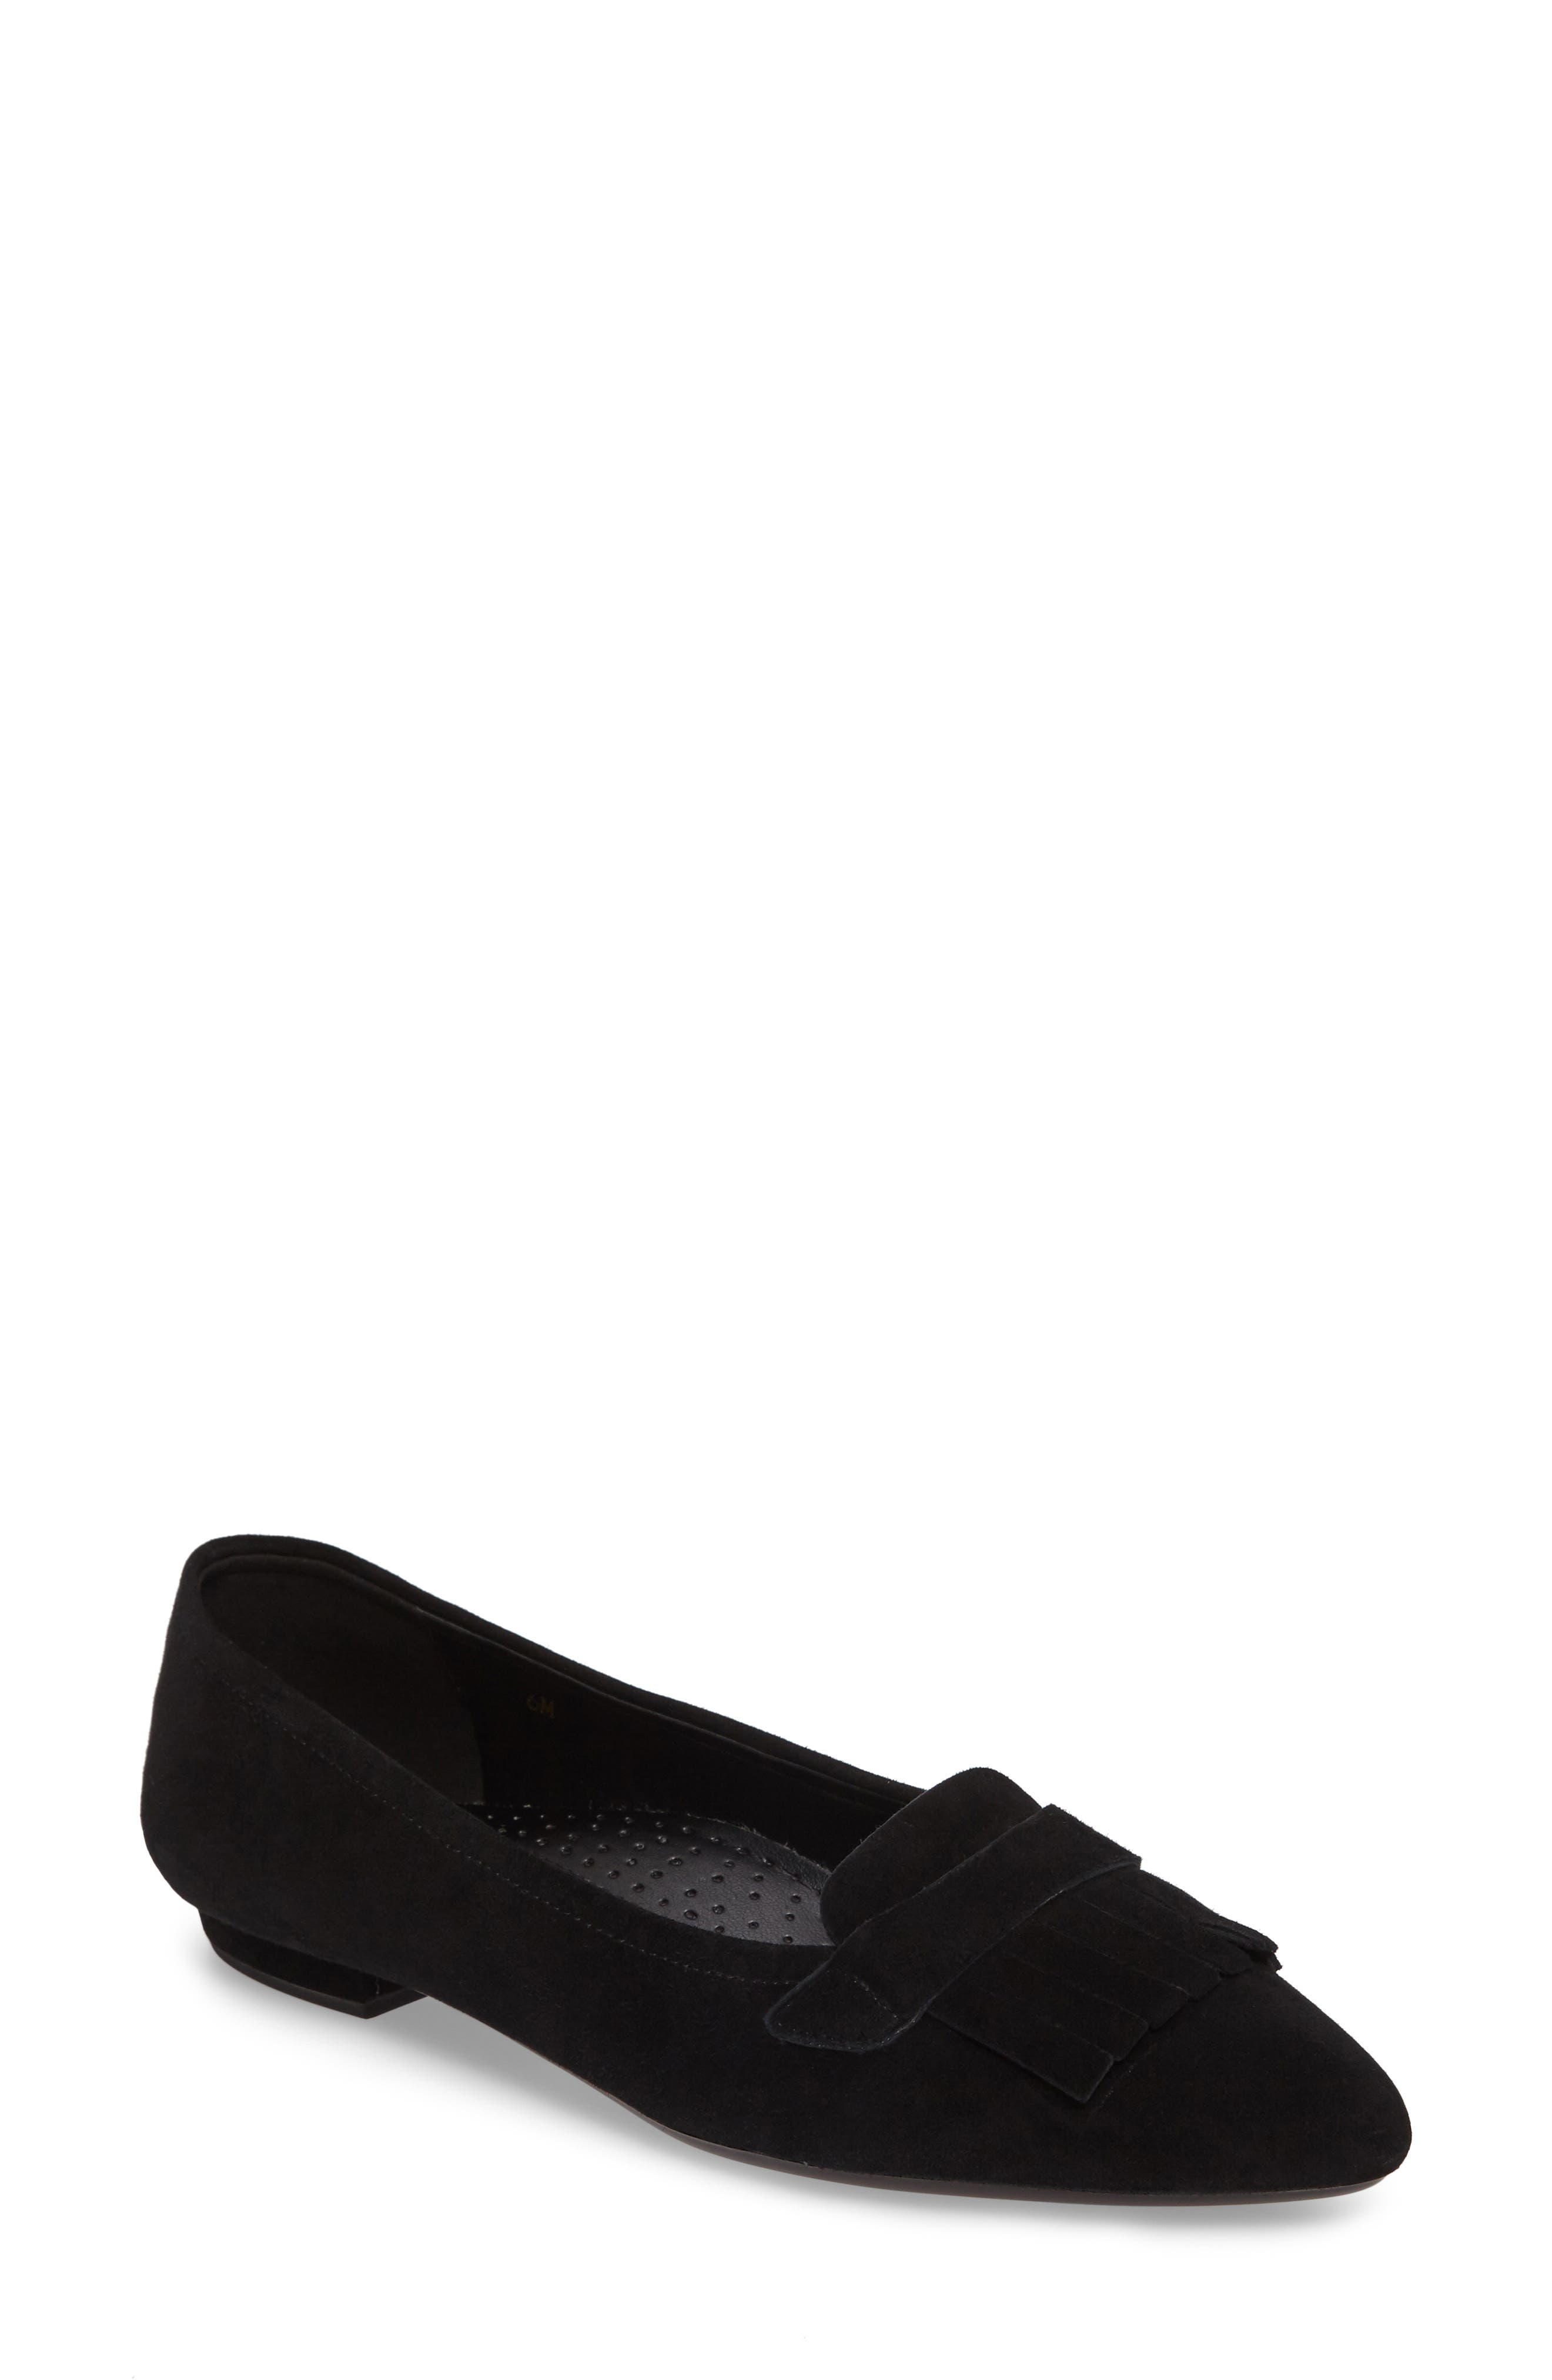 Gaea Loafer Flat,                         Main,                         color, 001